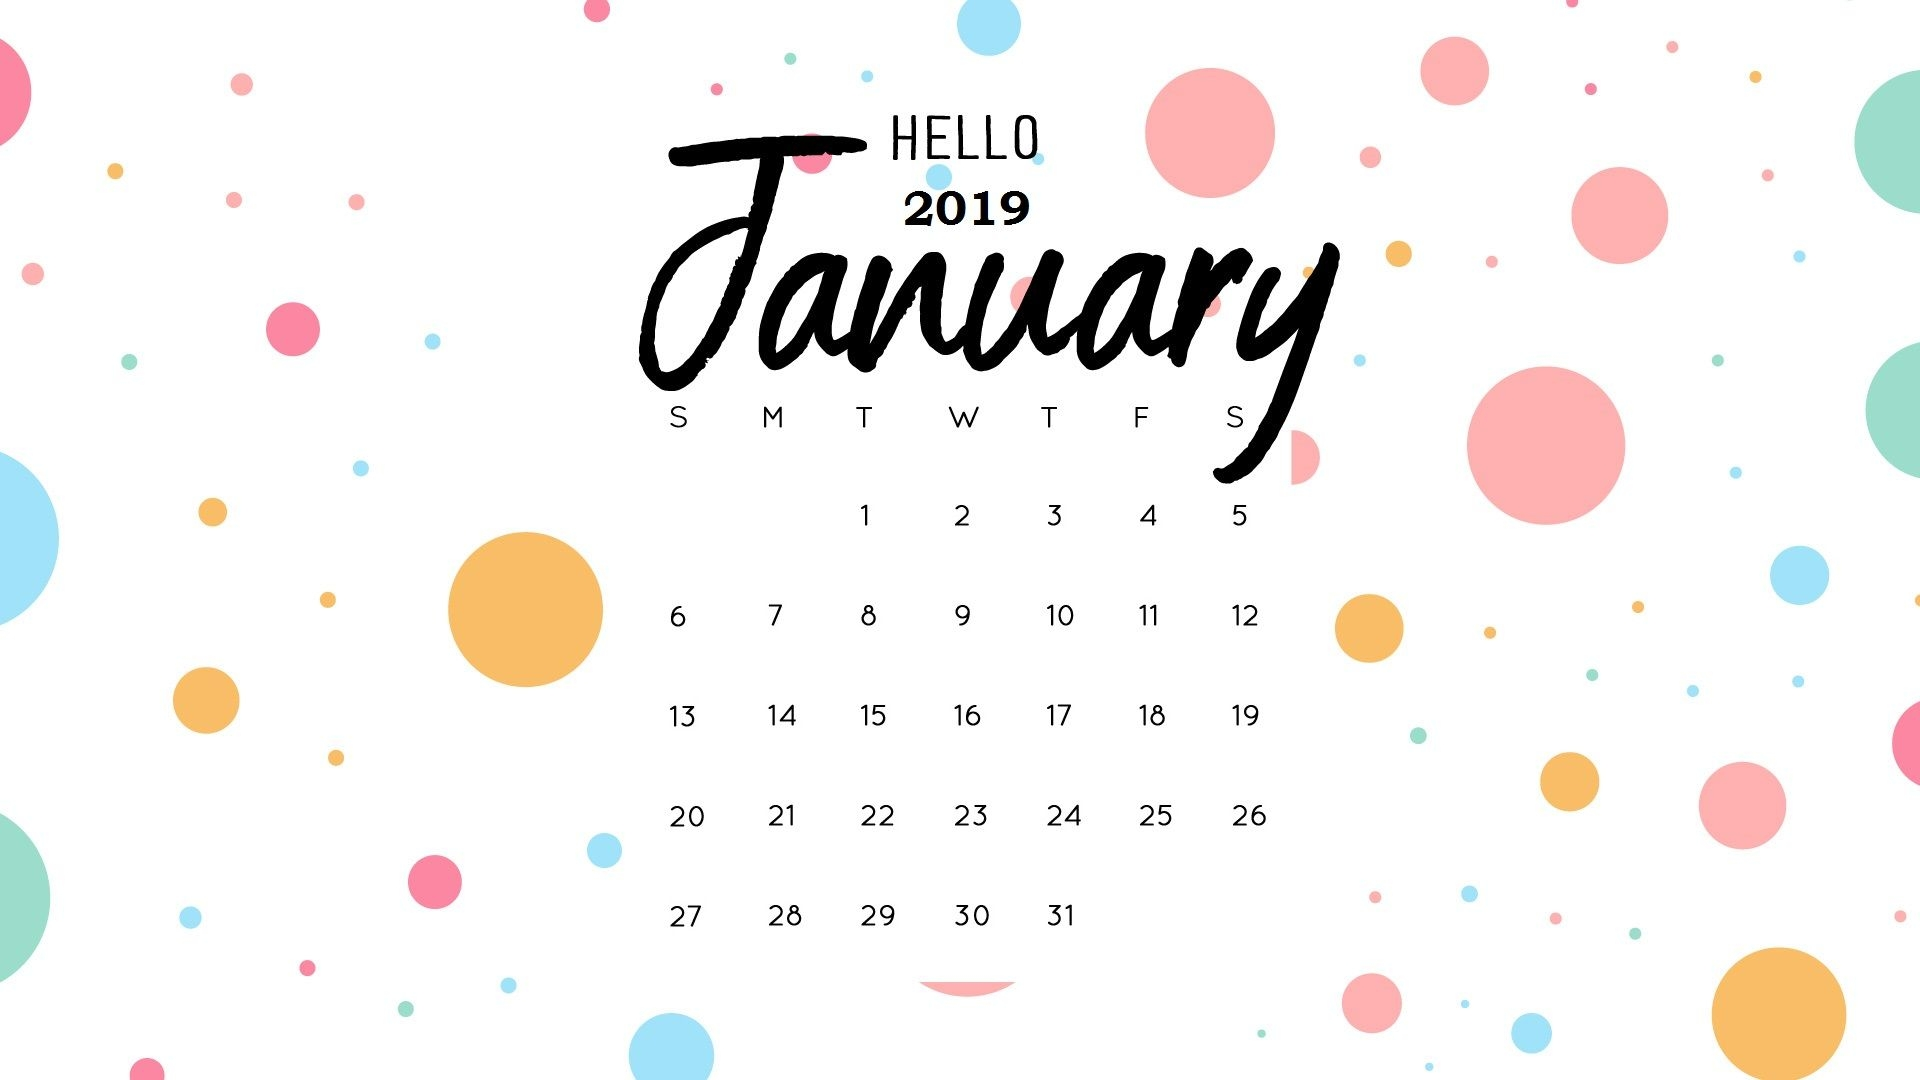 hello january 2019 calendar wallpaper monthly calendar templates January 2019 HD Calendar Wallpapers erdferdf